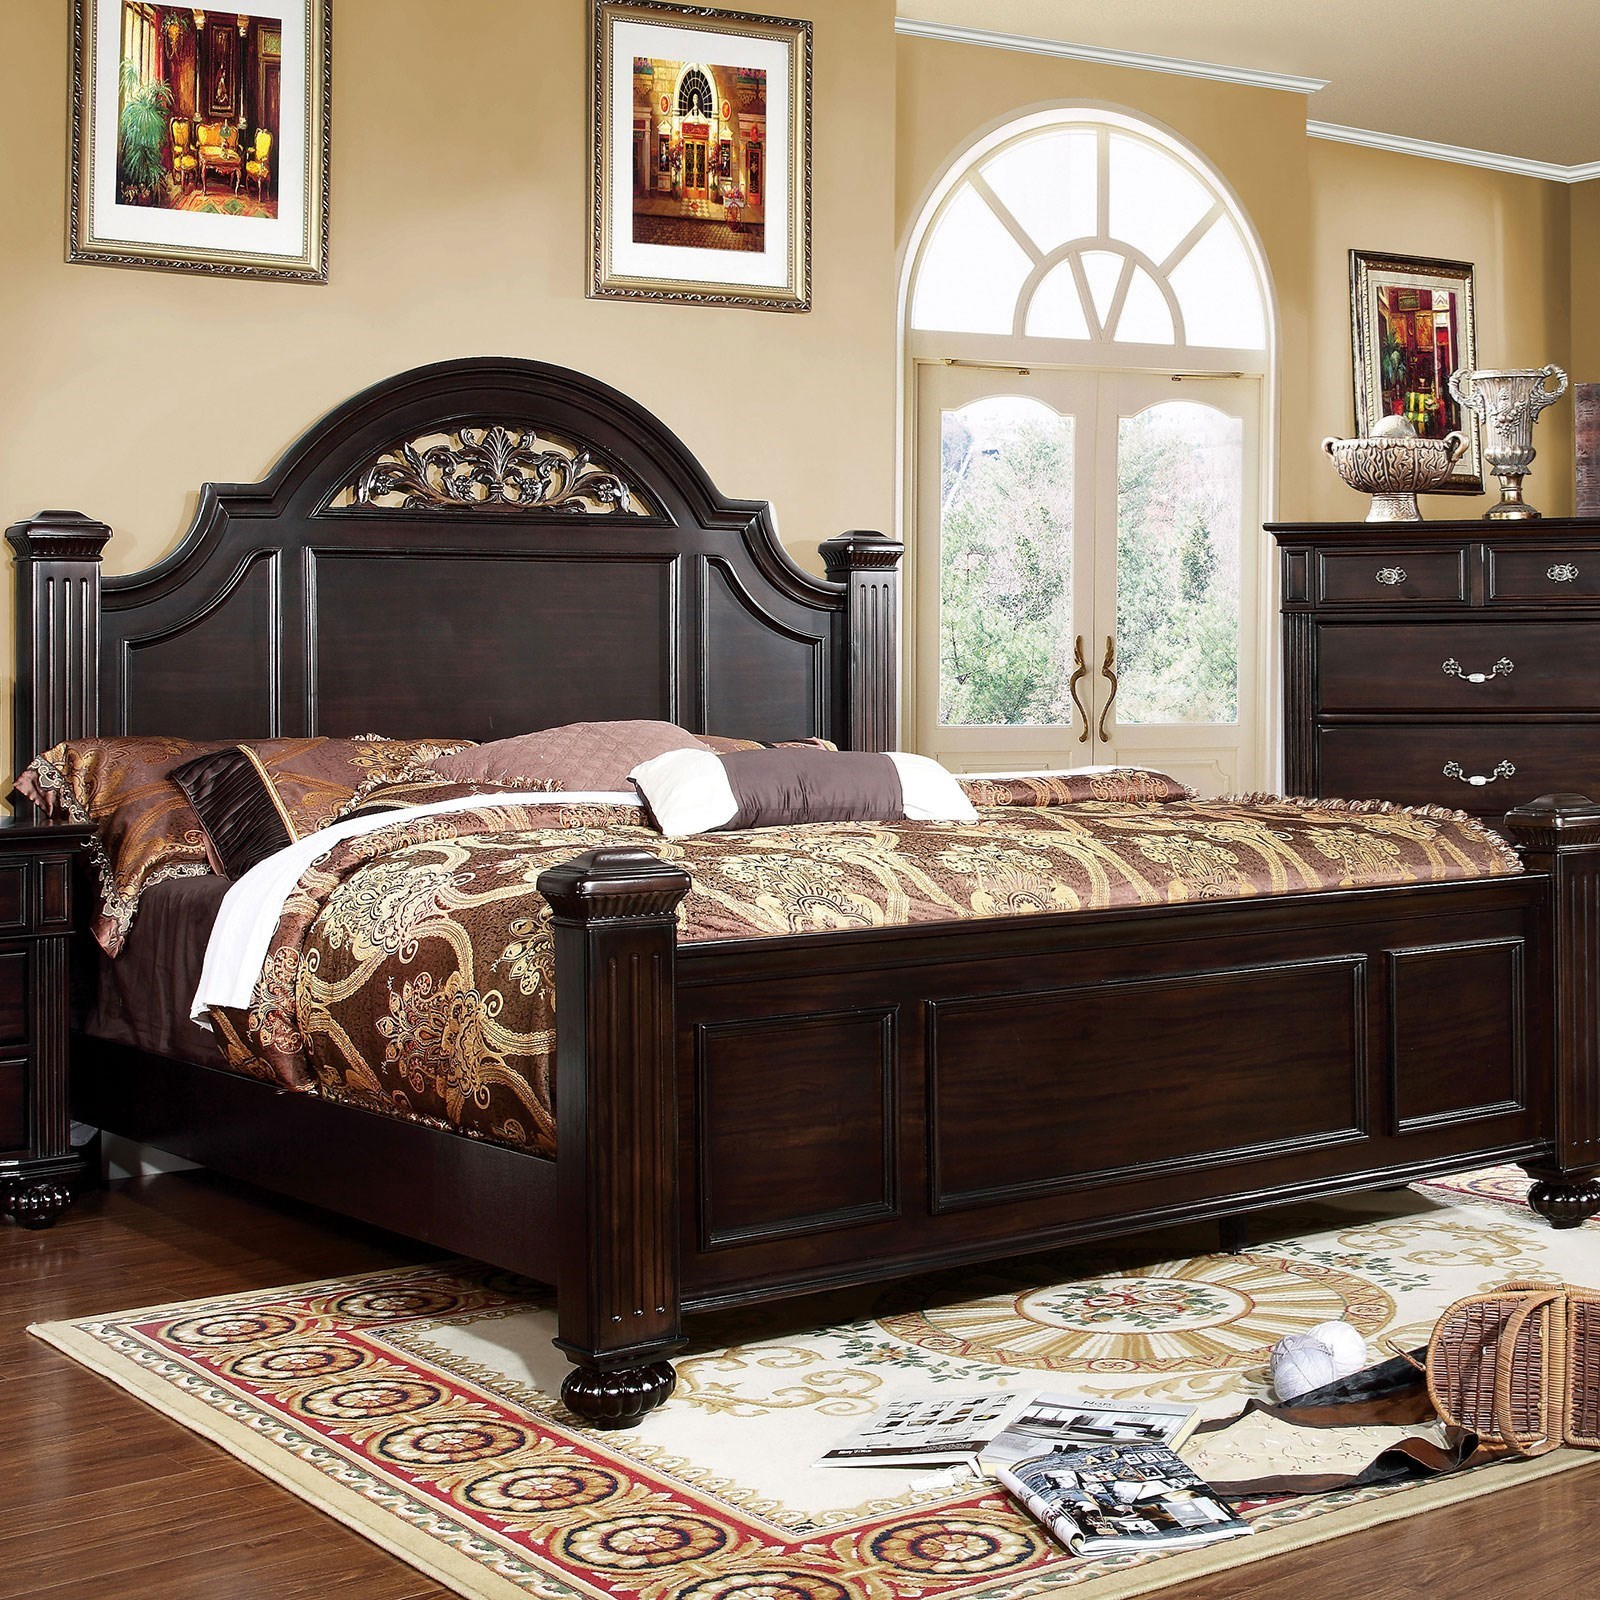 Syracuse Traditional California King Bed With Shaped Headboard Household Furniture Panel Beds